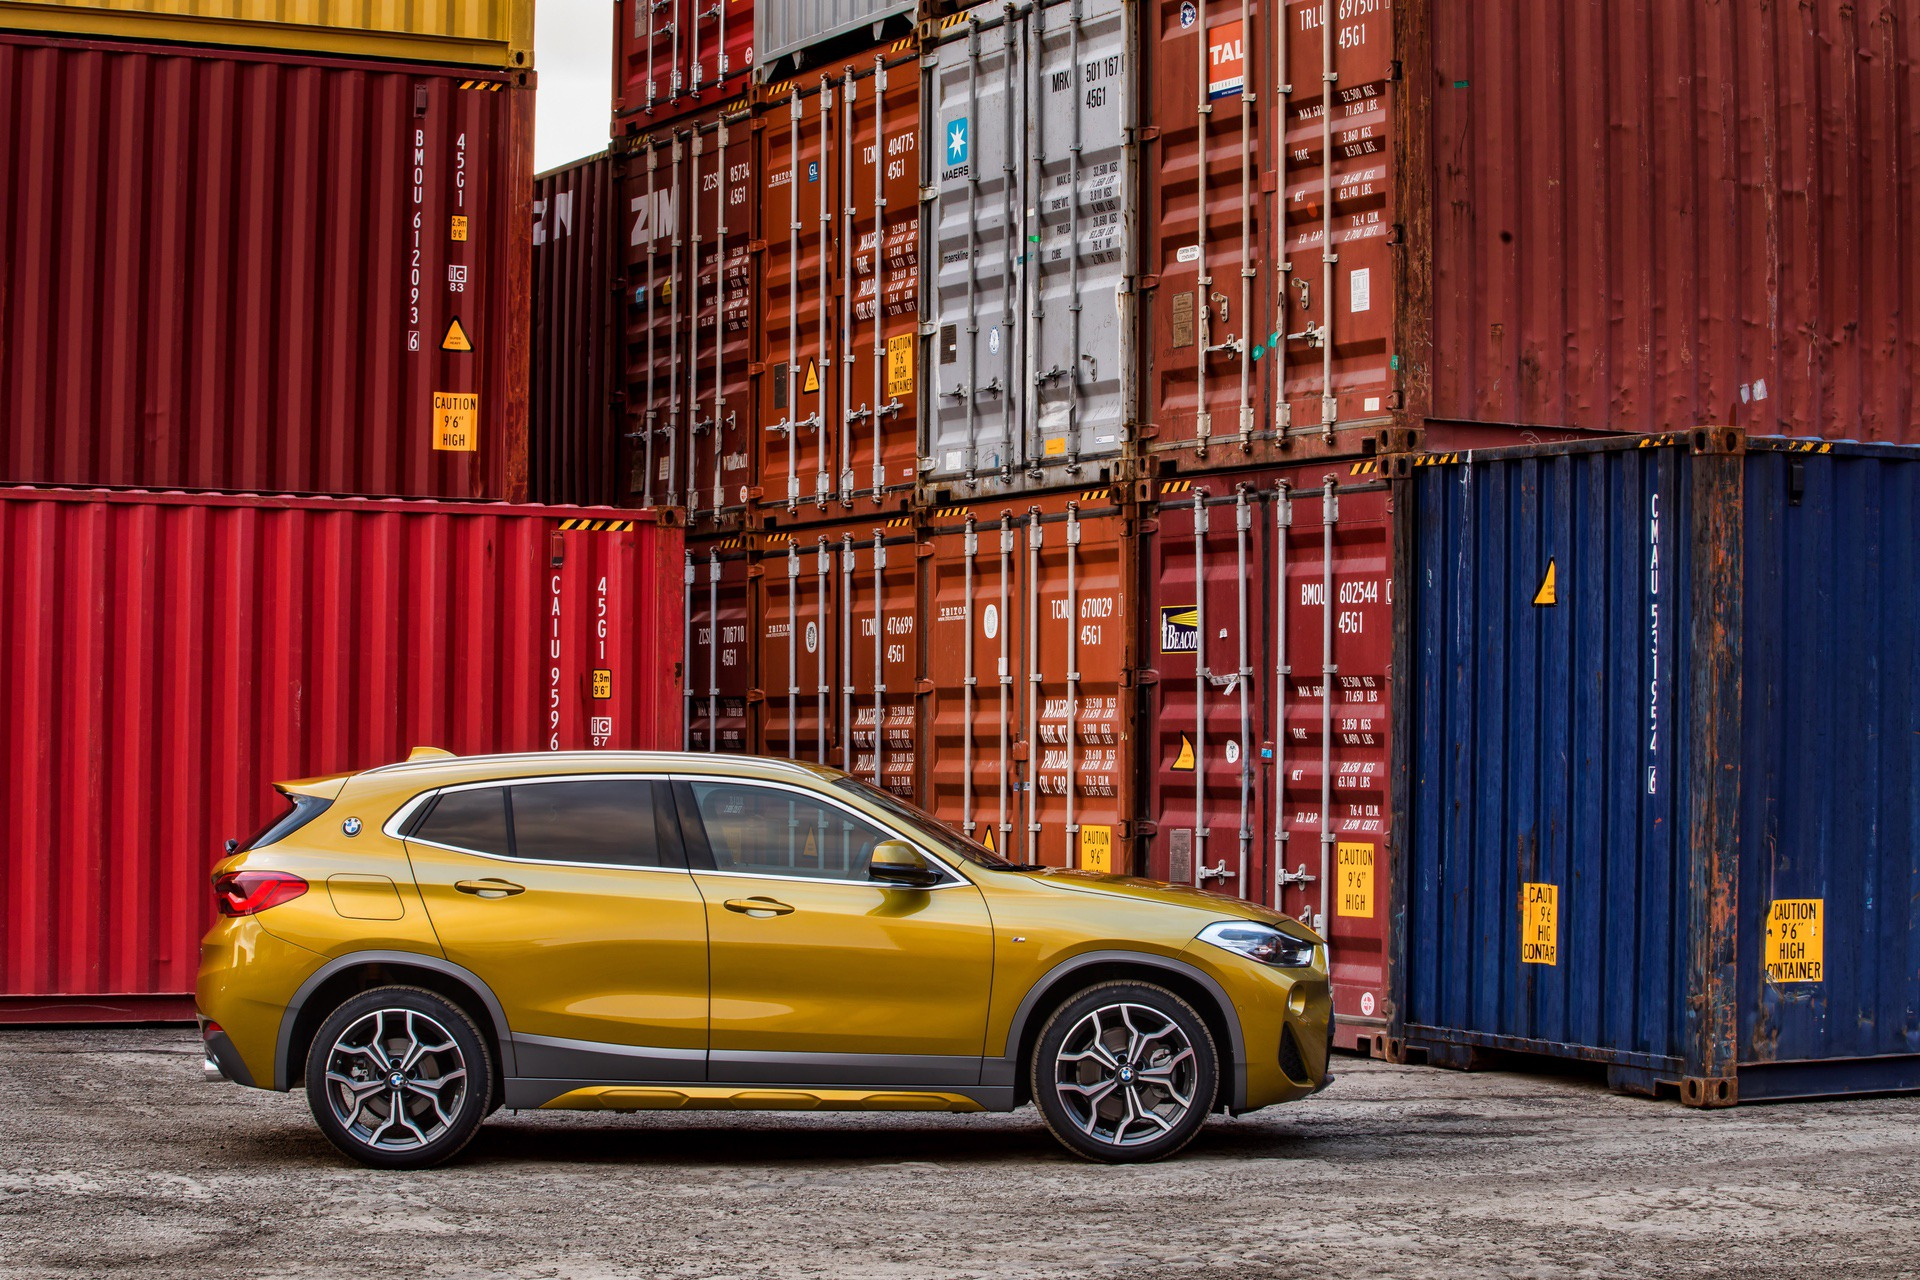 BMW_X2_Greek_presskit_0059